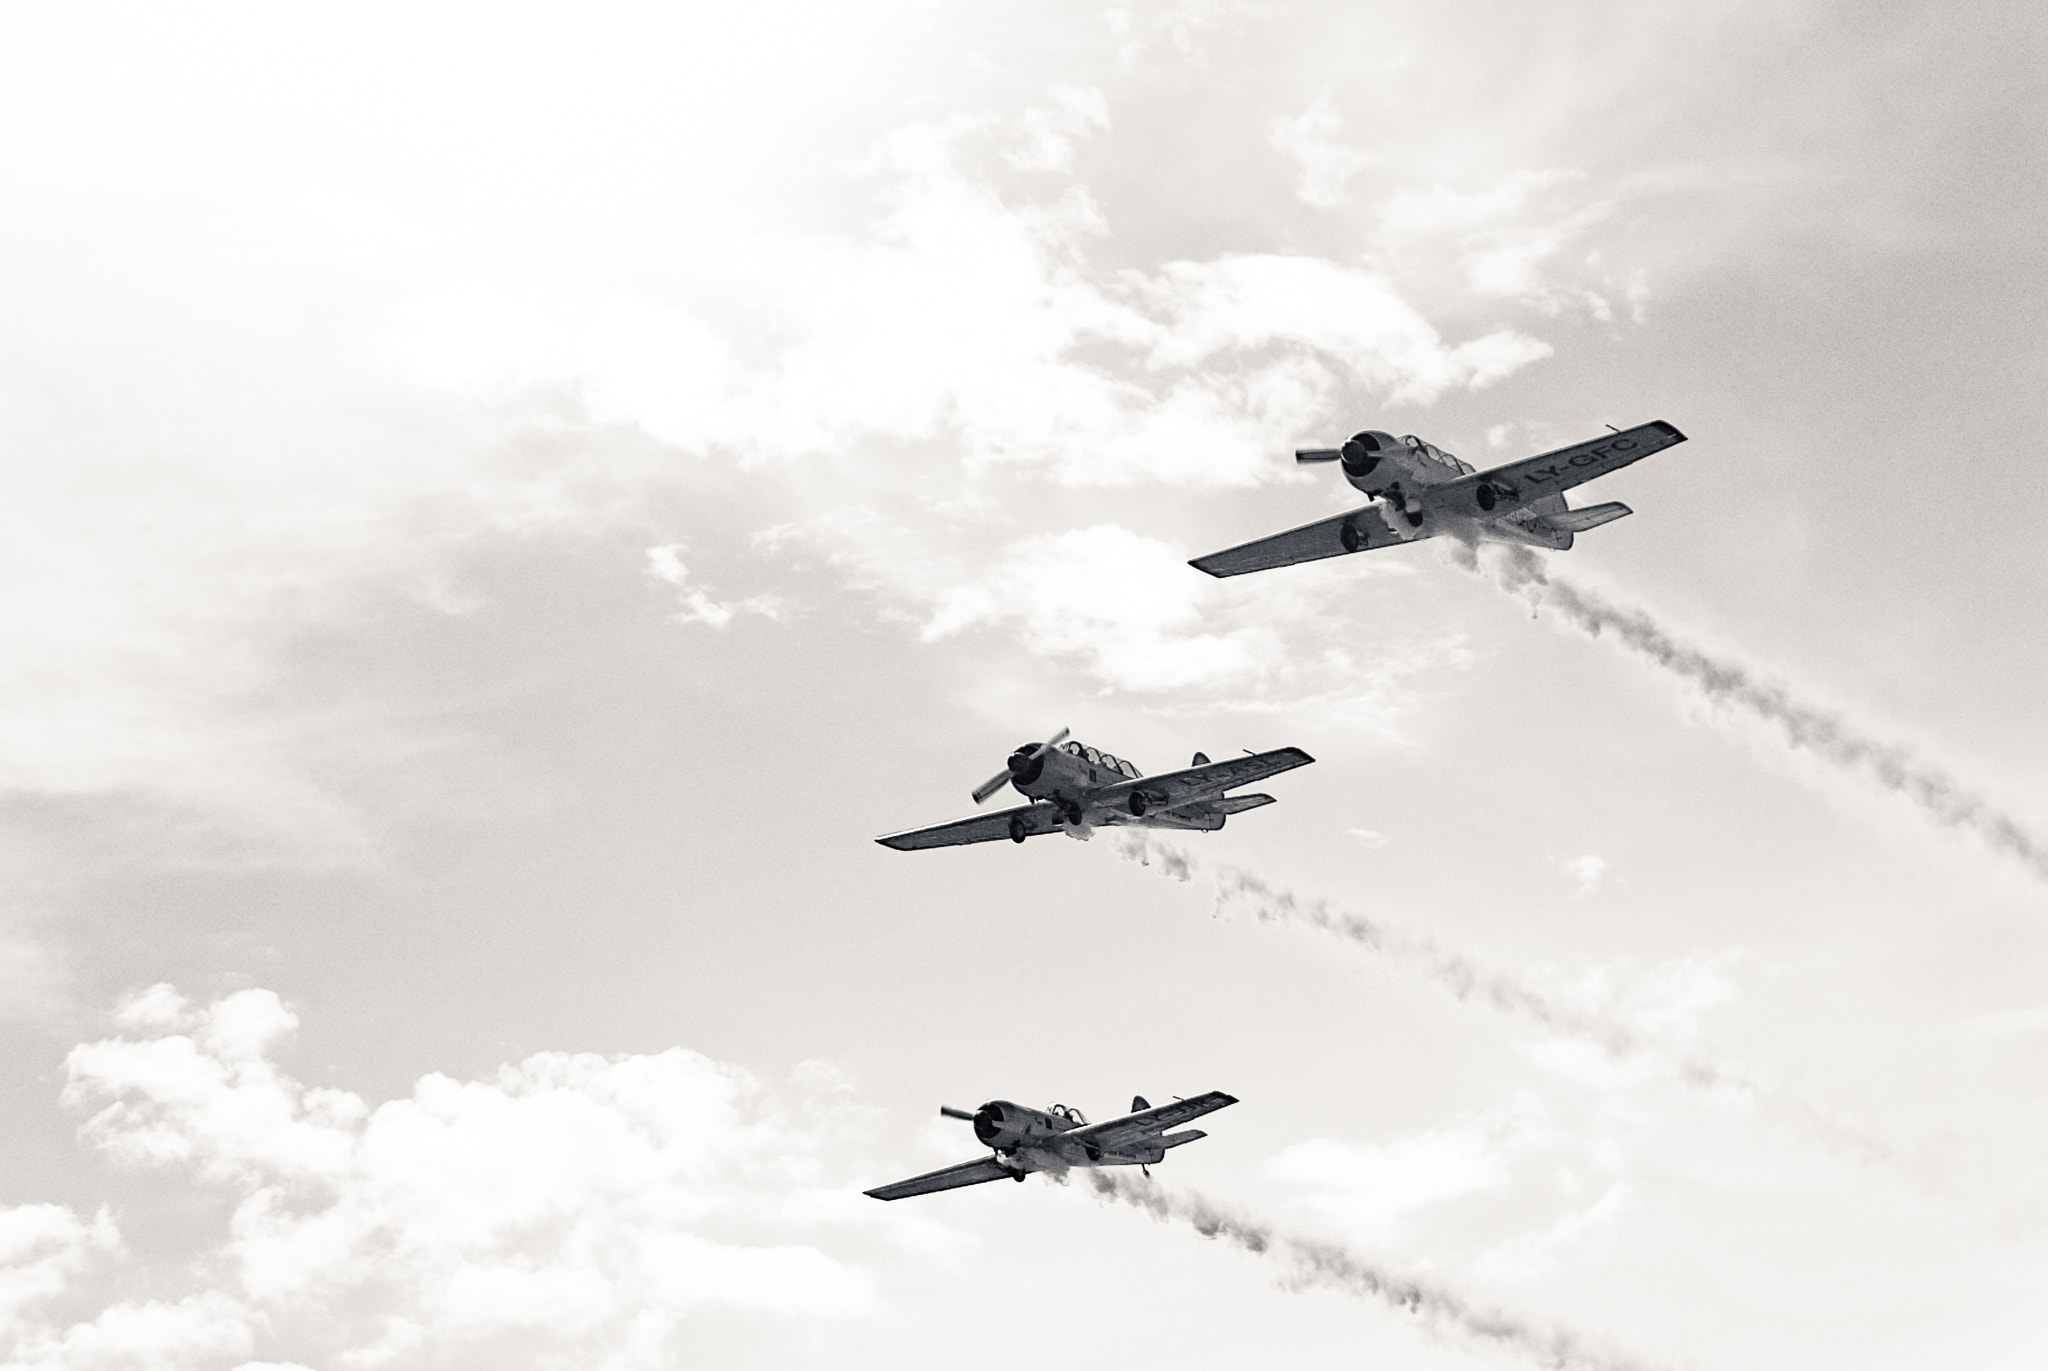 Photograph Fano Airshow 2011 by Matteo Rossini on 500px